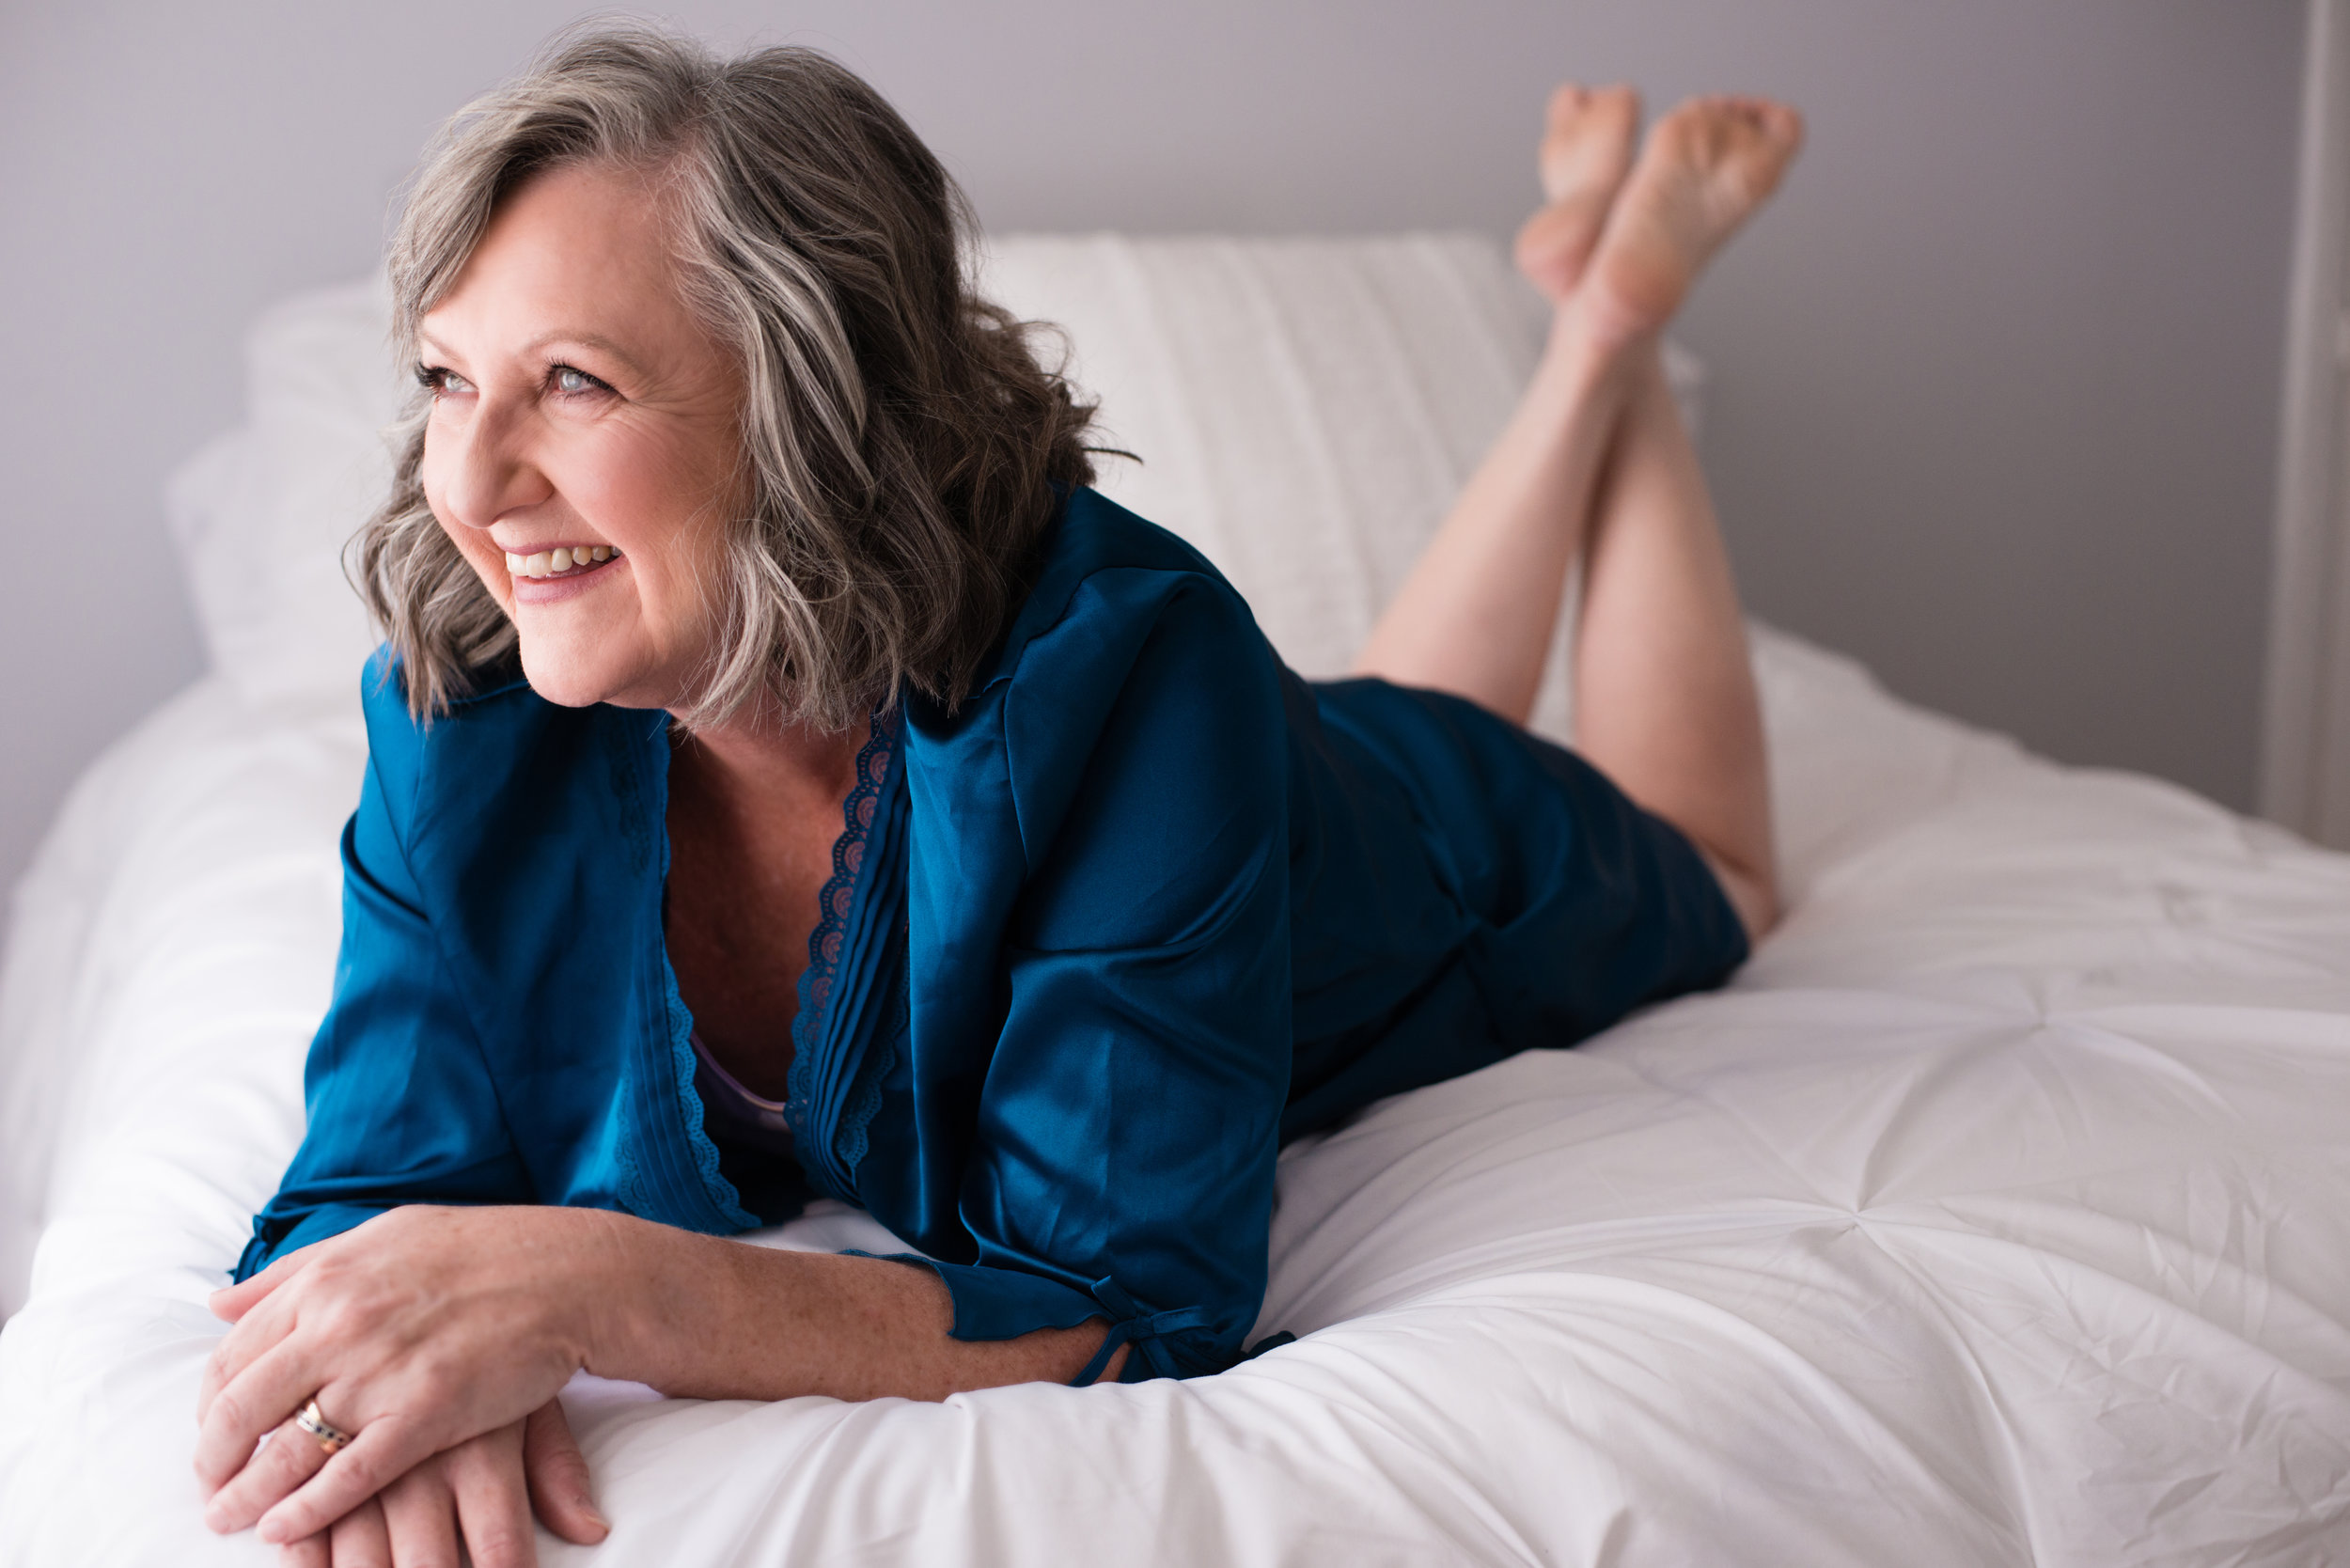 "Brave Boss Babe Barbara - ""I have had a double mastectomy and wear multiple medical devices which adhere to my skin. I have scarring and adhesive marks and had been feeling less than attractive due to the way my body appeared in my mirror. I spent the day with Leah, yesterday, for a boudoir shoot. She made everything so comfortable, relaxing and fun! After hair and makeup, provided by a professional, I felt like royalty!The pictures, as I'd hoped, captured ME and not just my scars. She captured the beauty of who I am, which truly overshadowed any physical flaws I may have focused on. I felt beautiful inside and out by the time we finished. Viewing the photos afterward was very emotional for me. I'd never seen myself like that. I even purchased one of the photos which showed my scarring. . .it is part of my journey and part of who that pretty woman in the picture is.Thank you Leah, for helping me take back my body and my self image."""